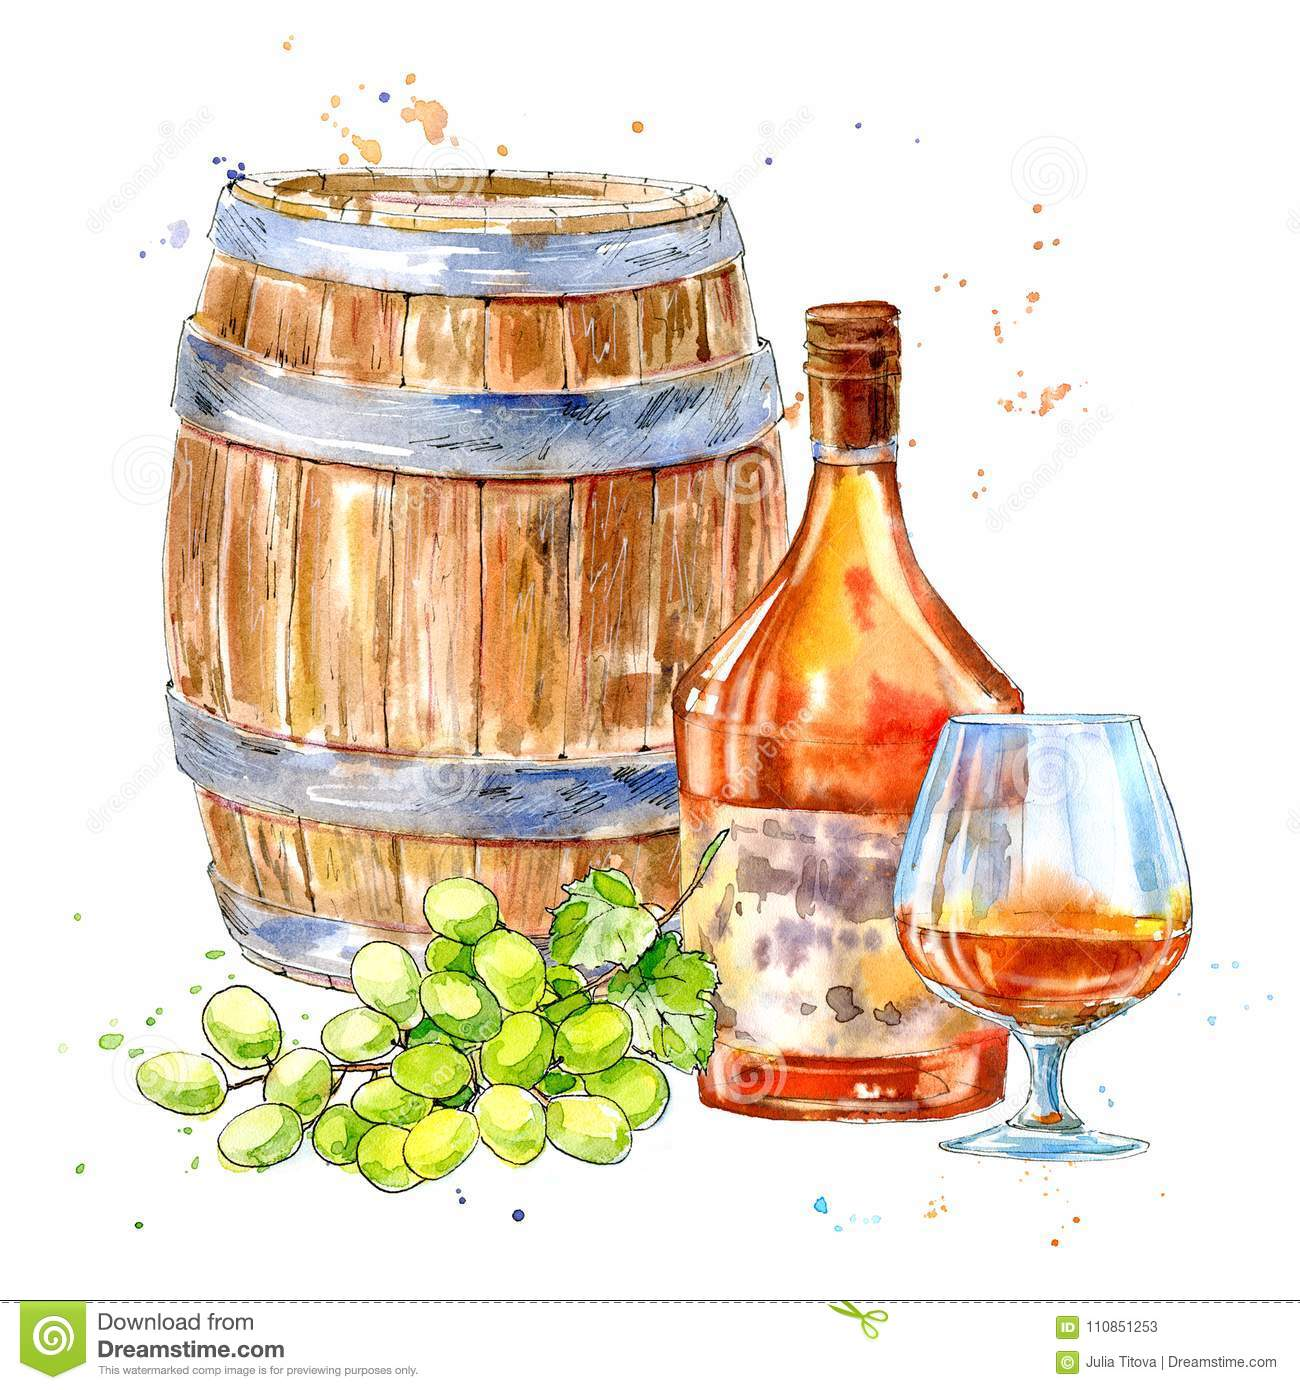 Bottle of cognac,wooden barrel,grapes and glasses.